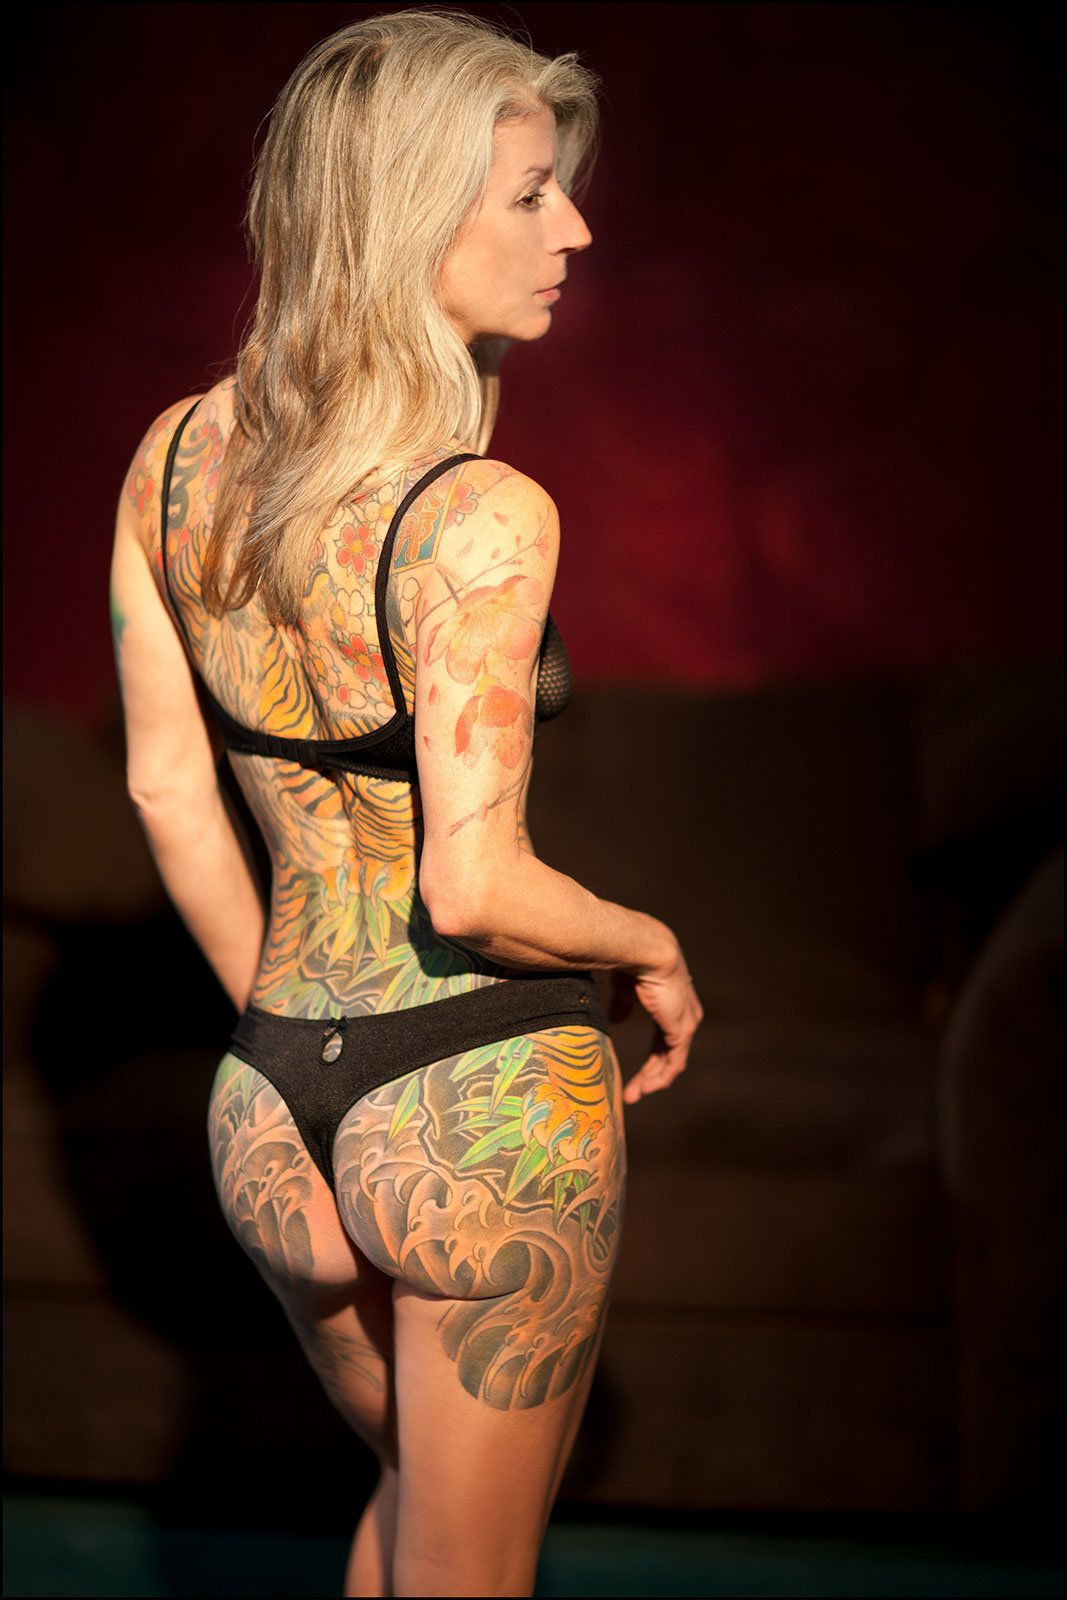 Opinion naked women with tattoos in public tumblr that